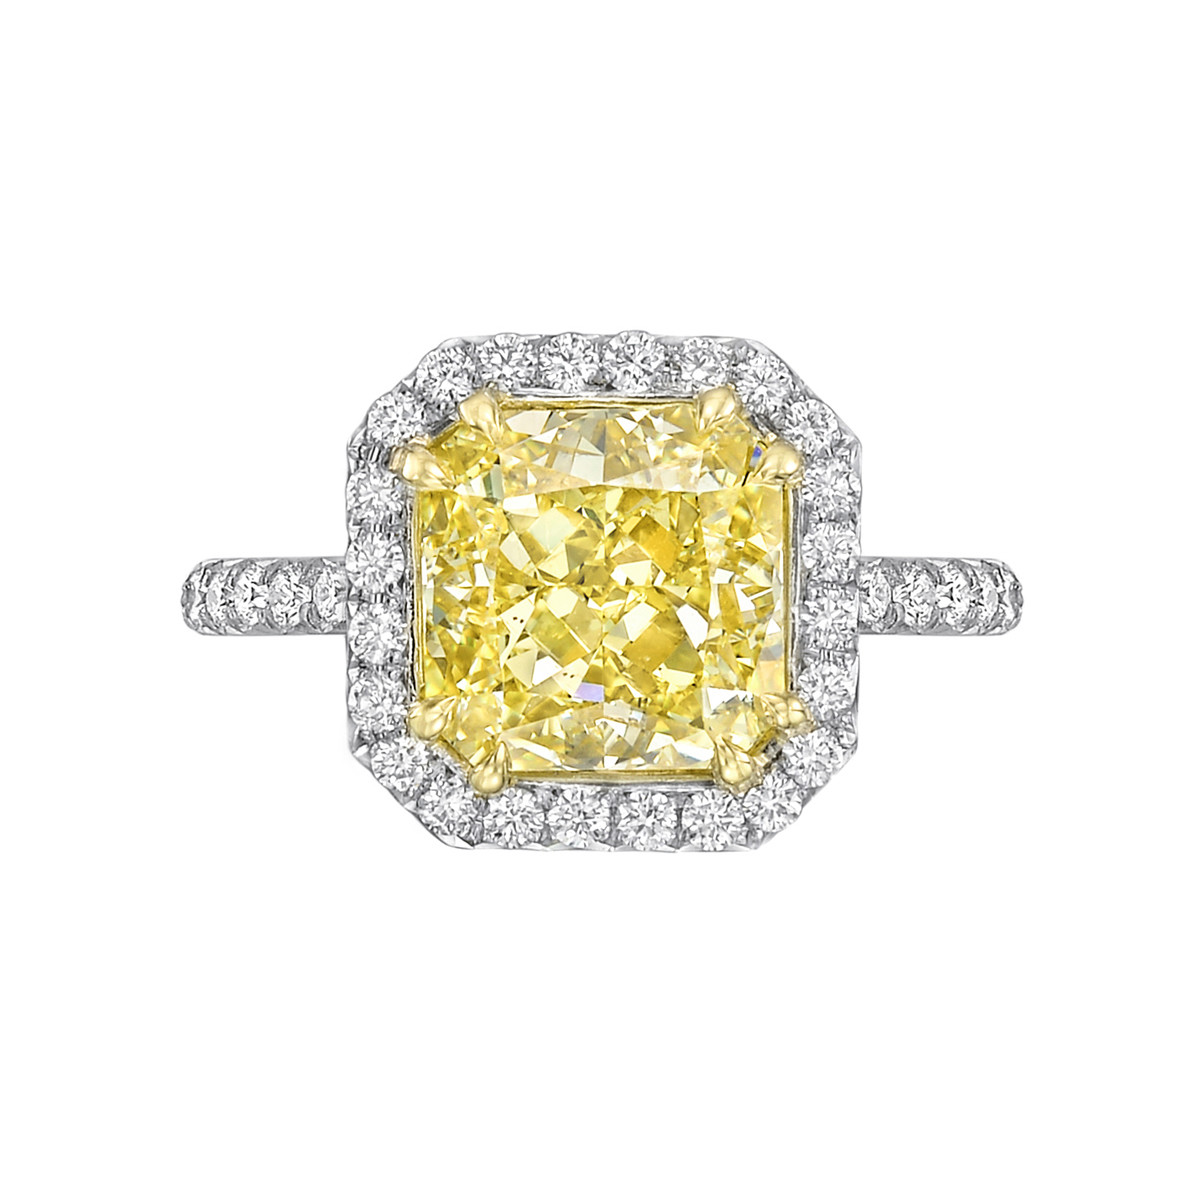 "4.01 Carat Fancy Yellow Diamond ""Oriana"" Ring"